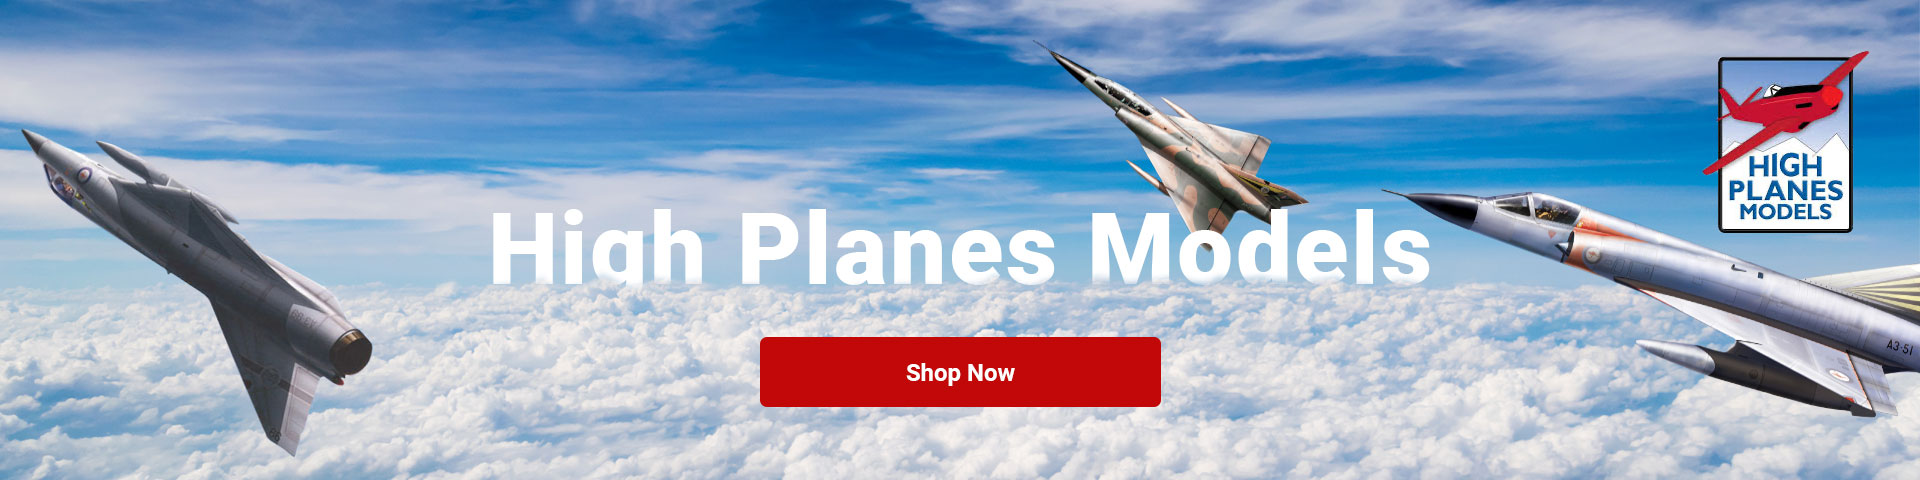 Shop our range of High Planes models